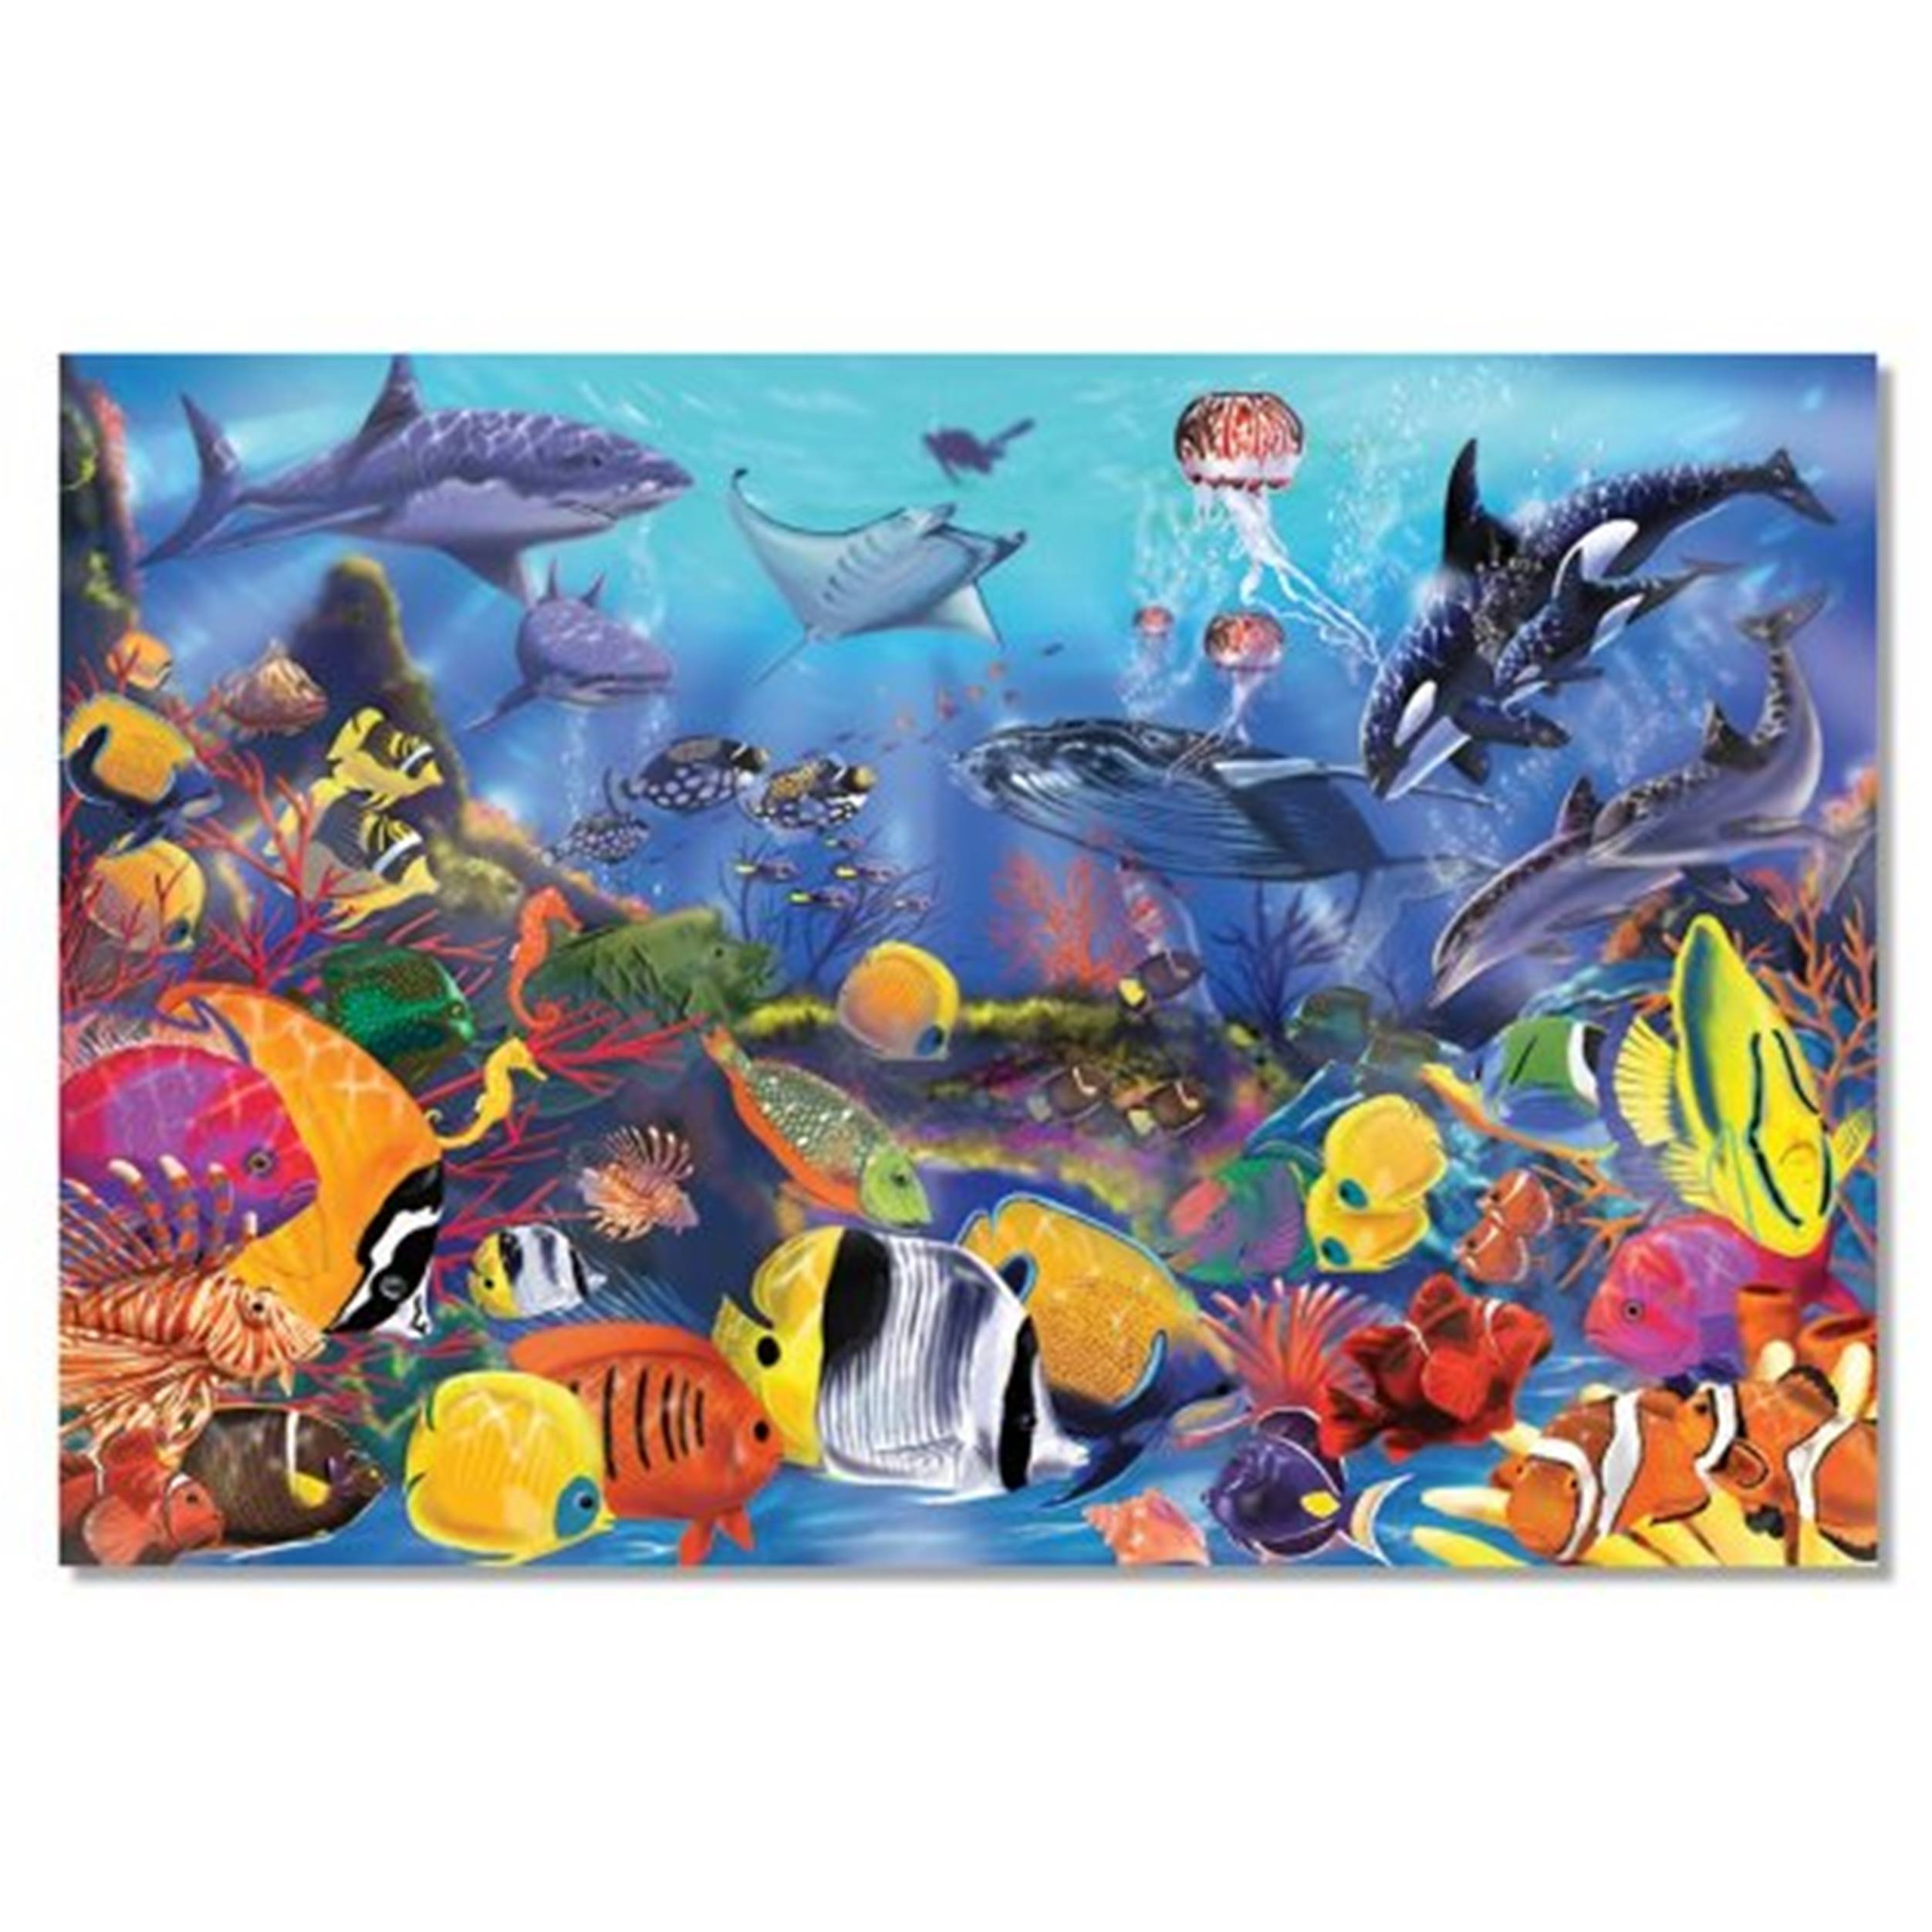 Underwater Floor Puzzle 48pc Jigsaw